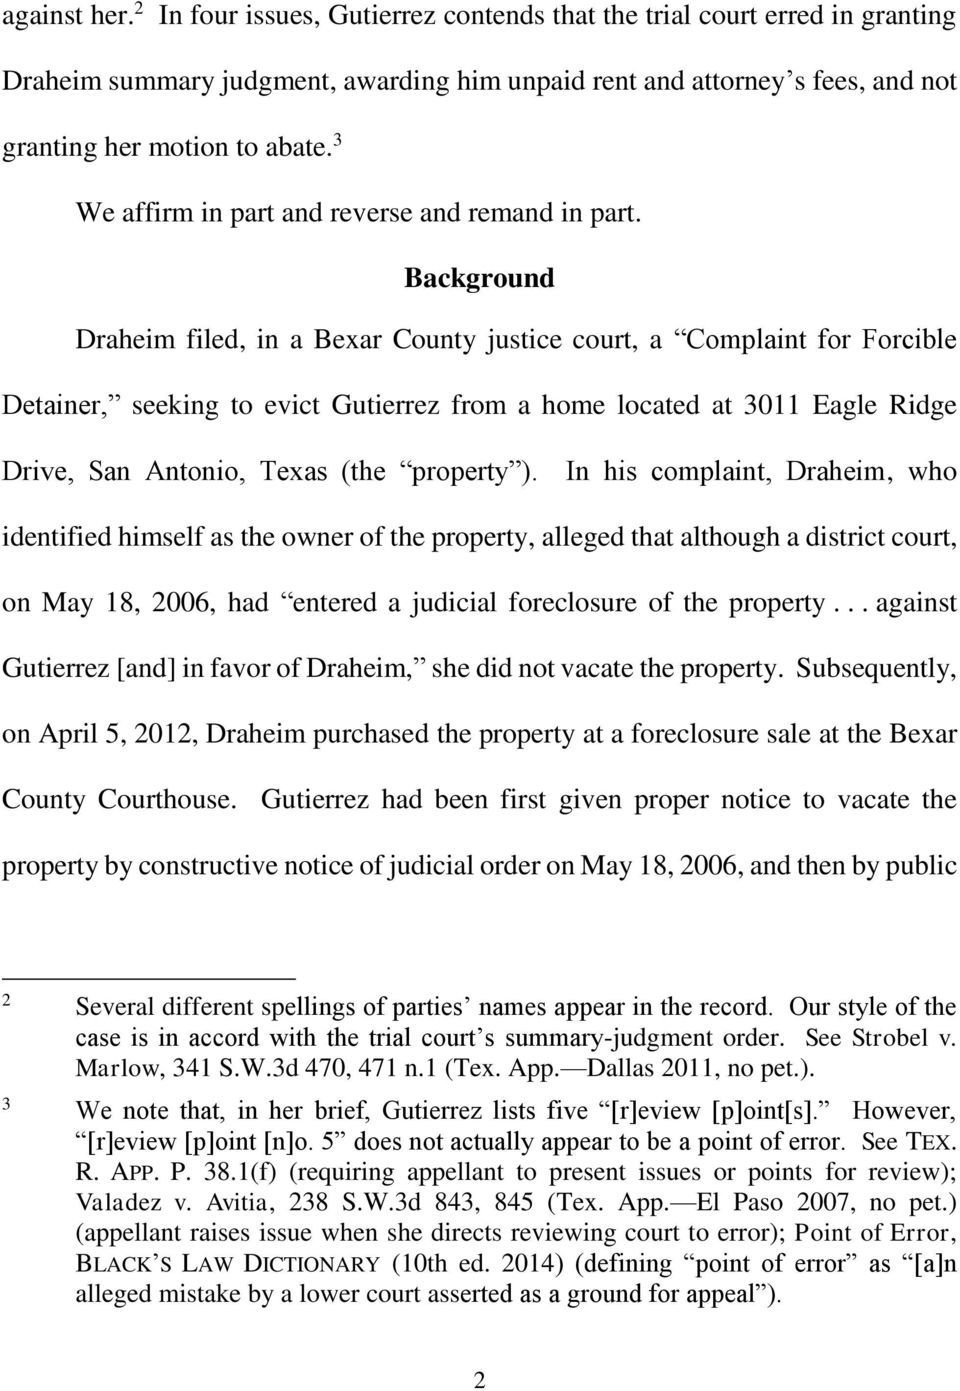 Background Draheim filed, in a Bexar County justice court, a Complaint for Forcible Detainer, seeking to evict Gutierrez from a home located at 3011 Eagle Ridge Drive, San Antonio, Texas (the